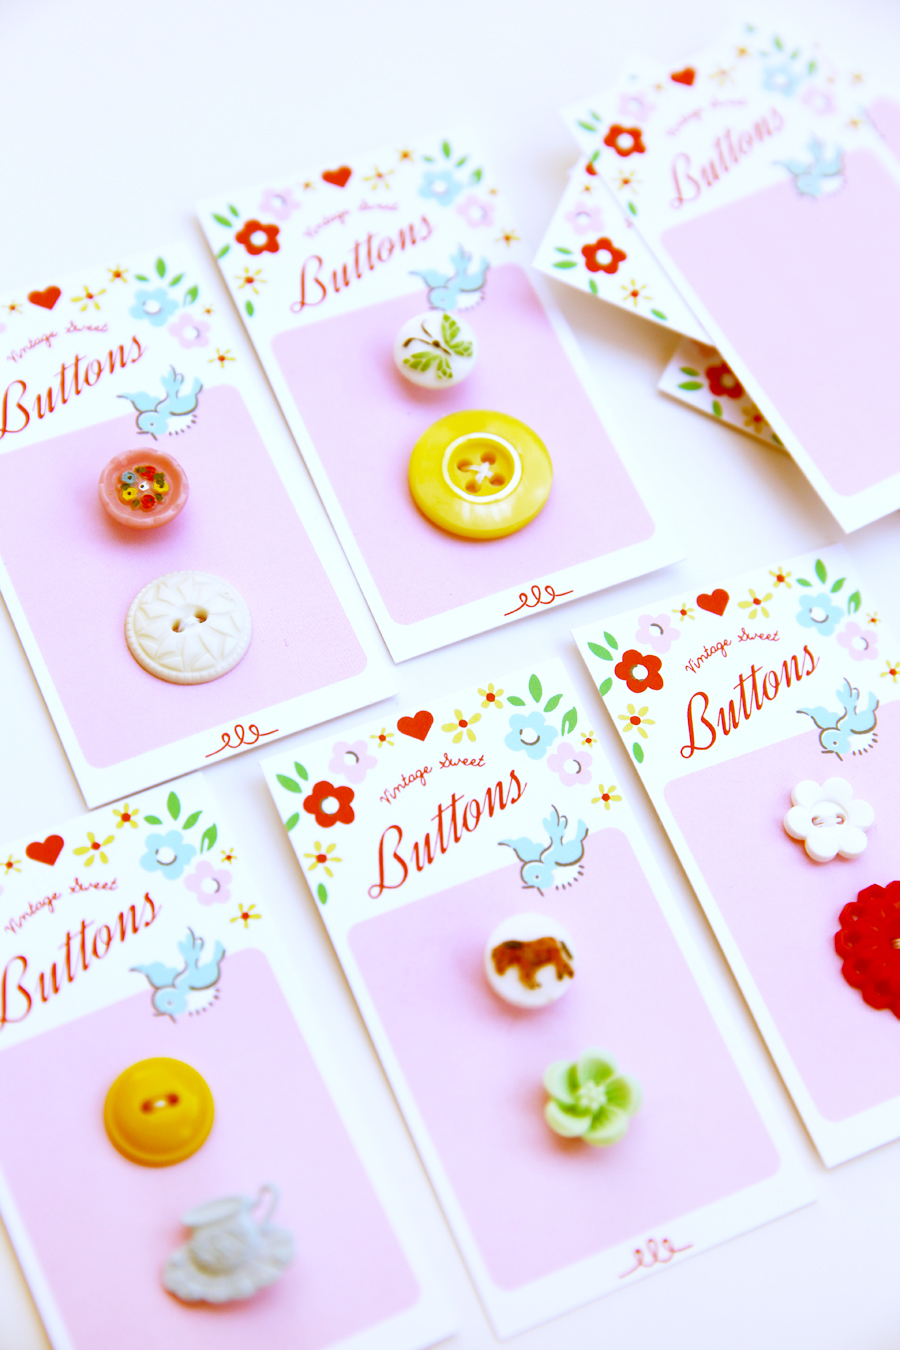 Free download ~ Vintage Inspired Button Cards! xo Elea Lutz